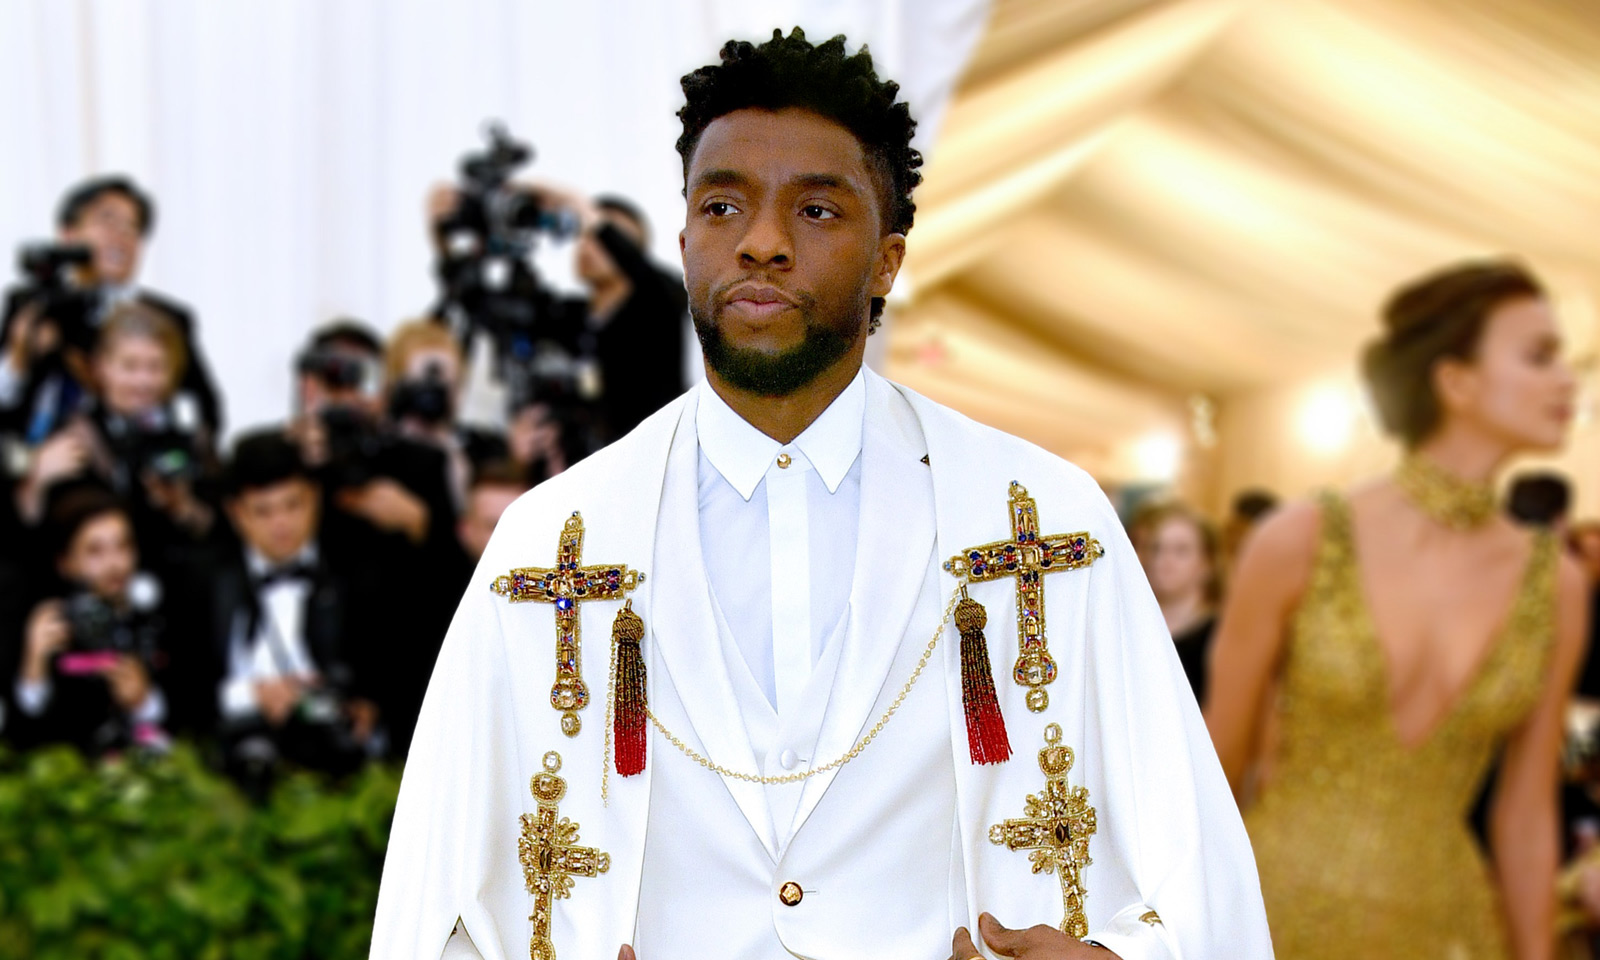 Chadwick Boseman attends the 2018 Met Gala in New York